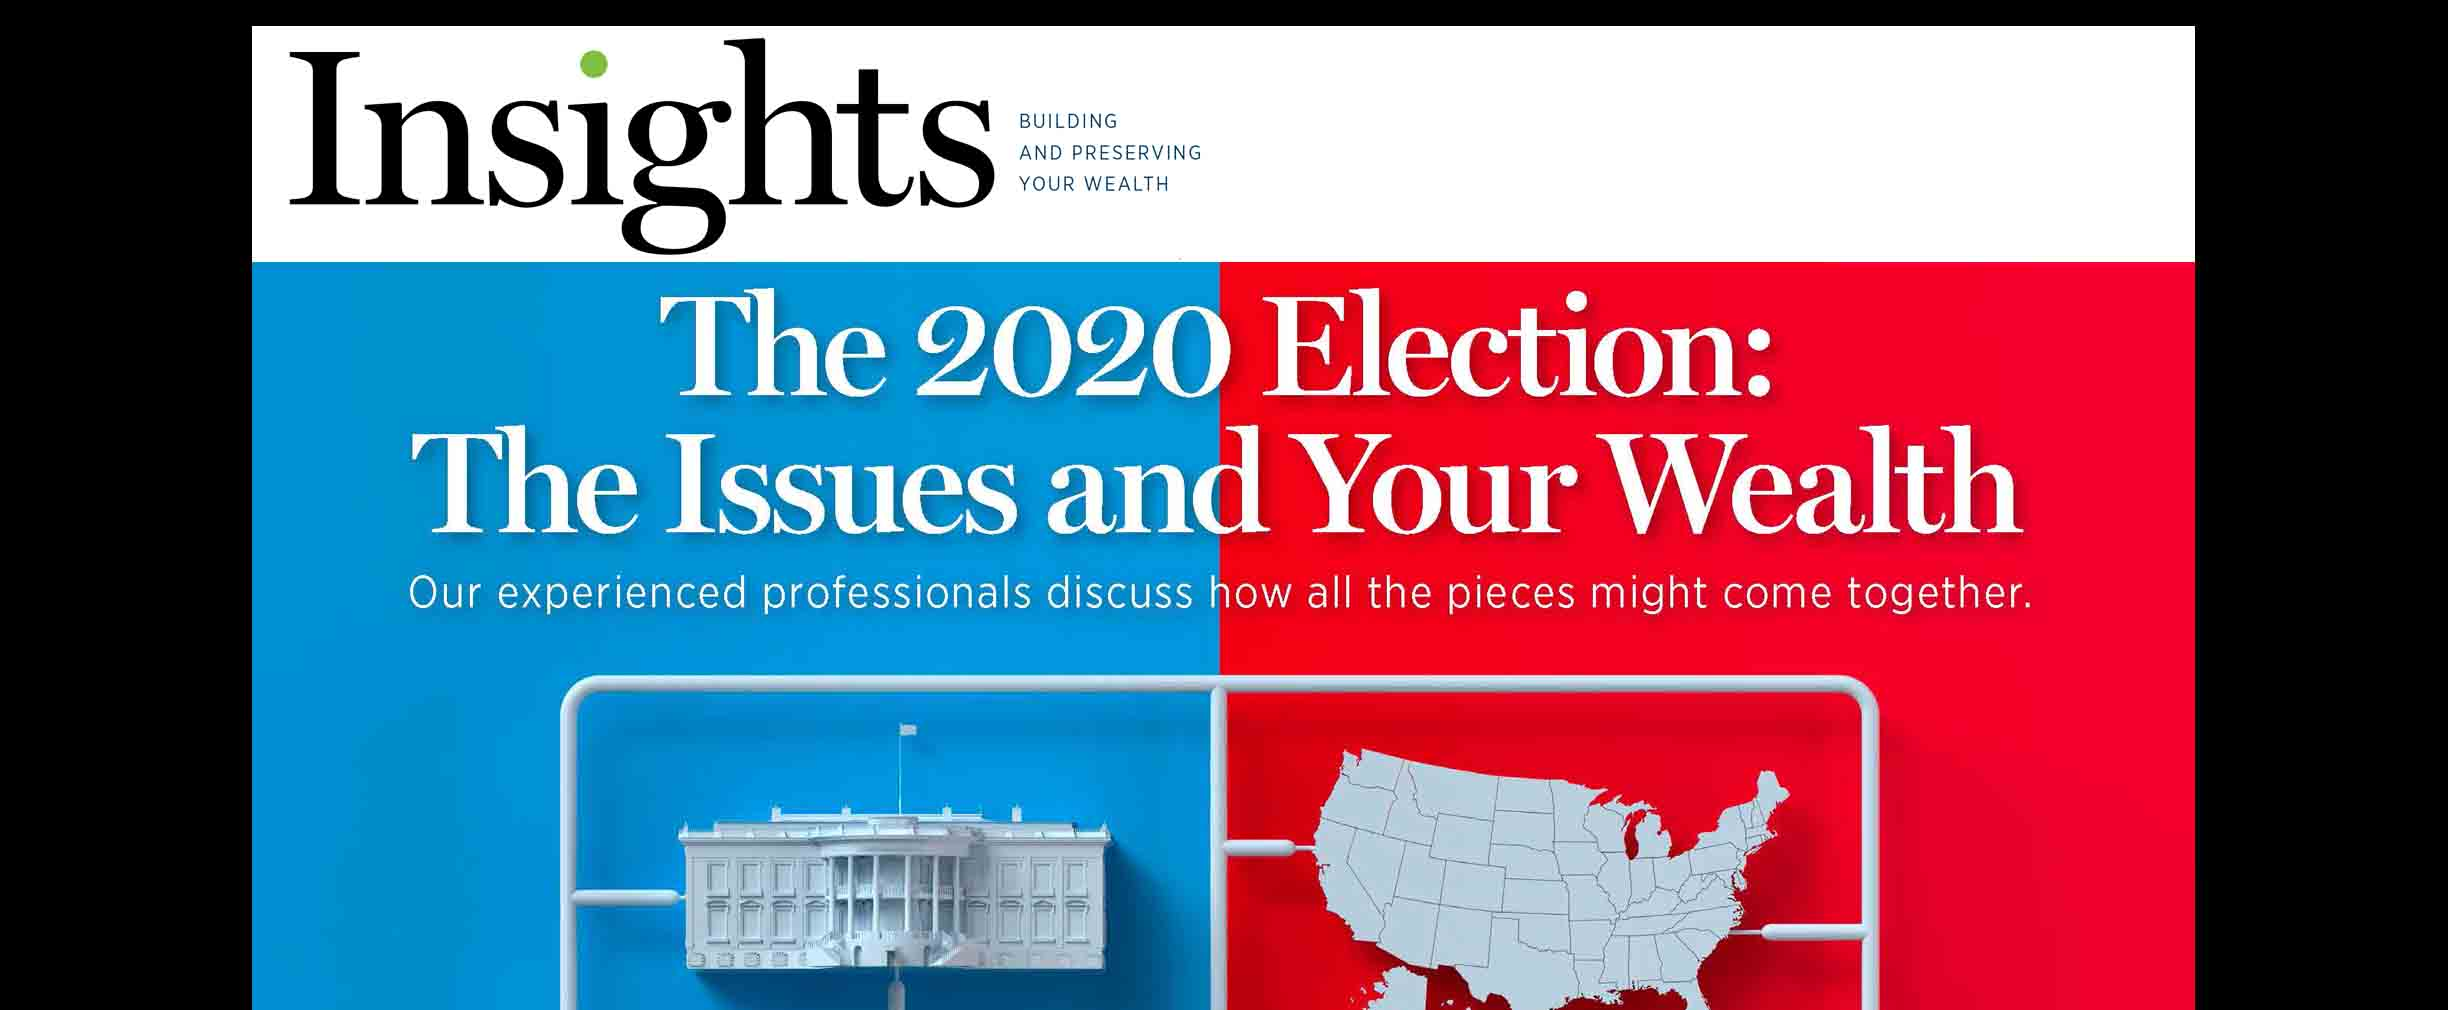 wealth insights magazine fall 2020